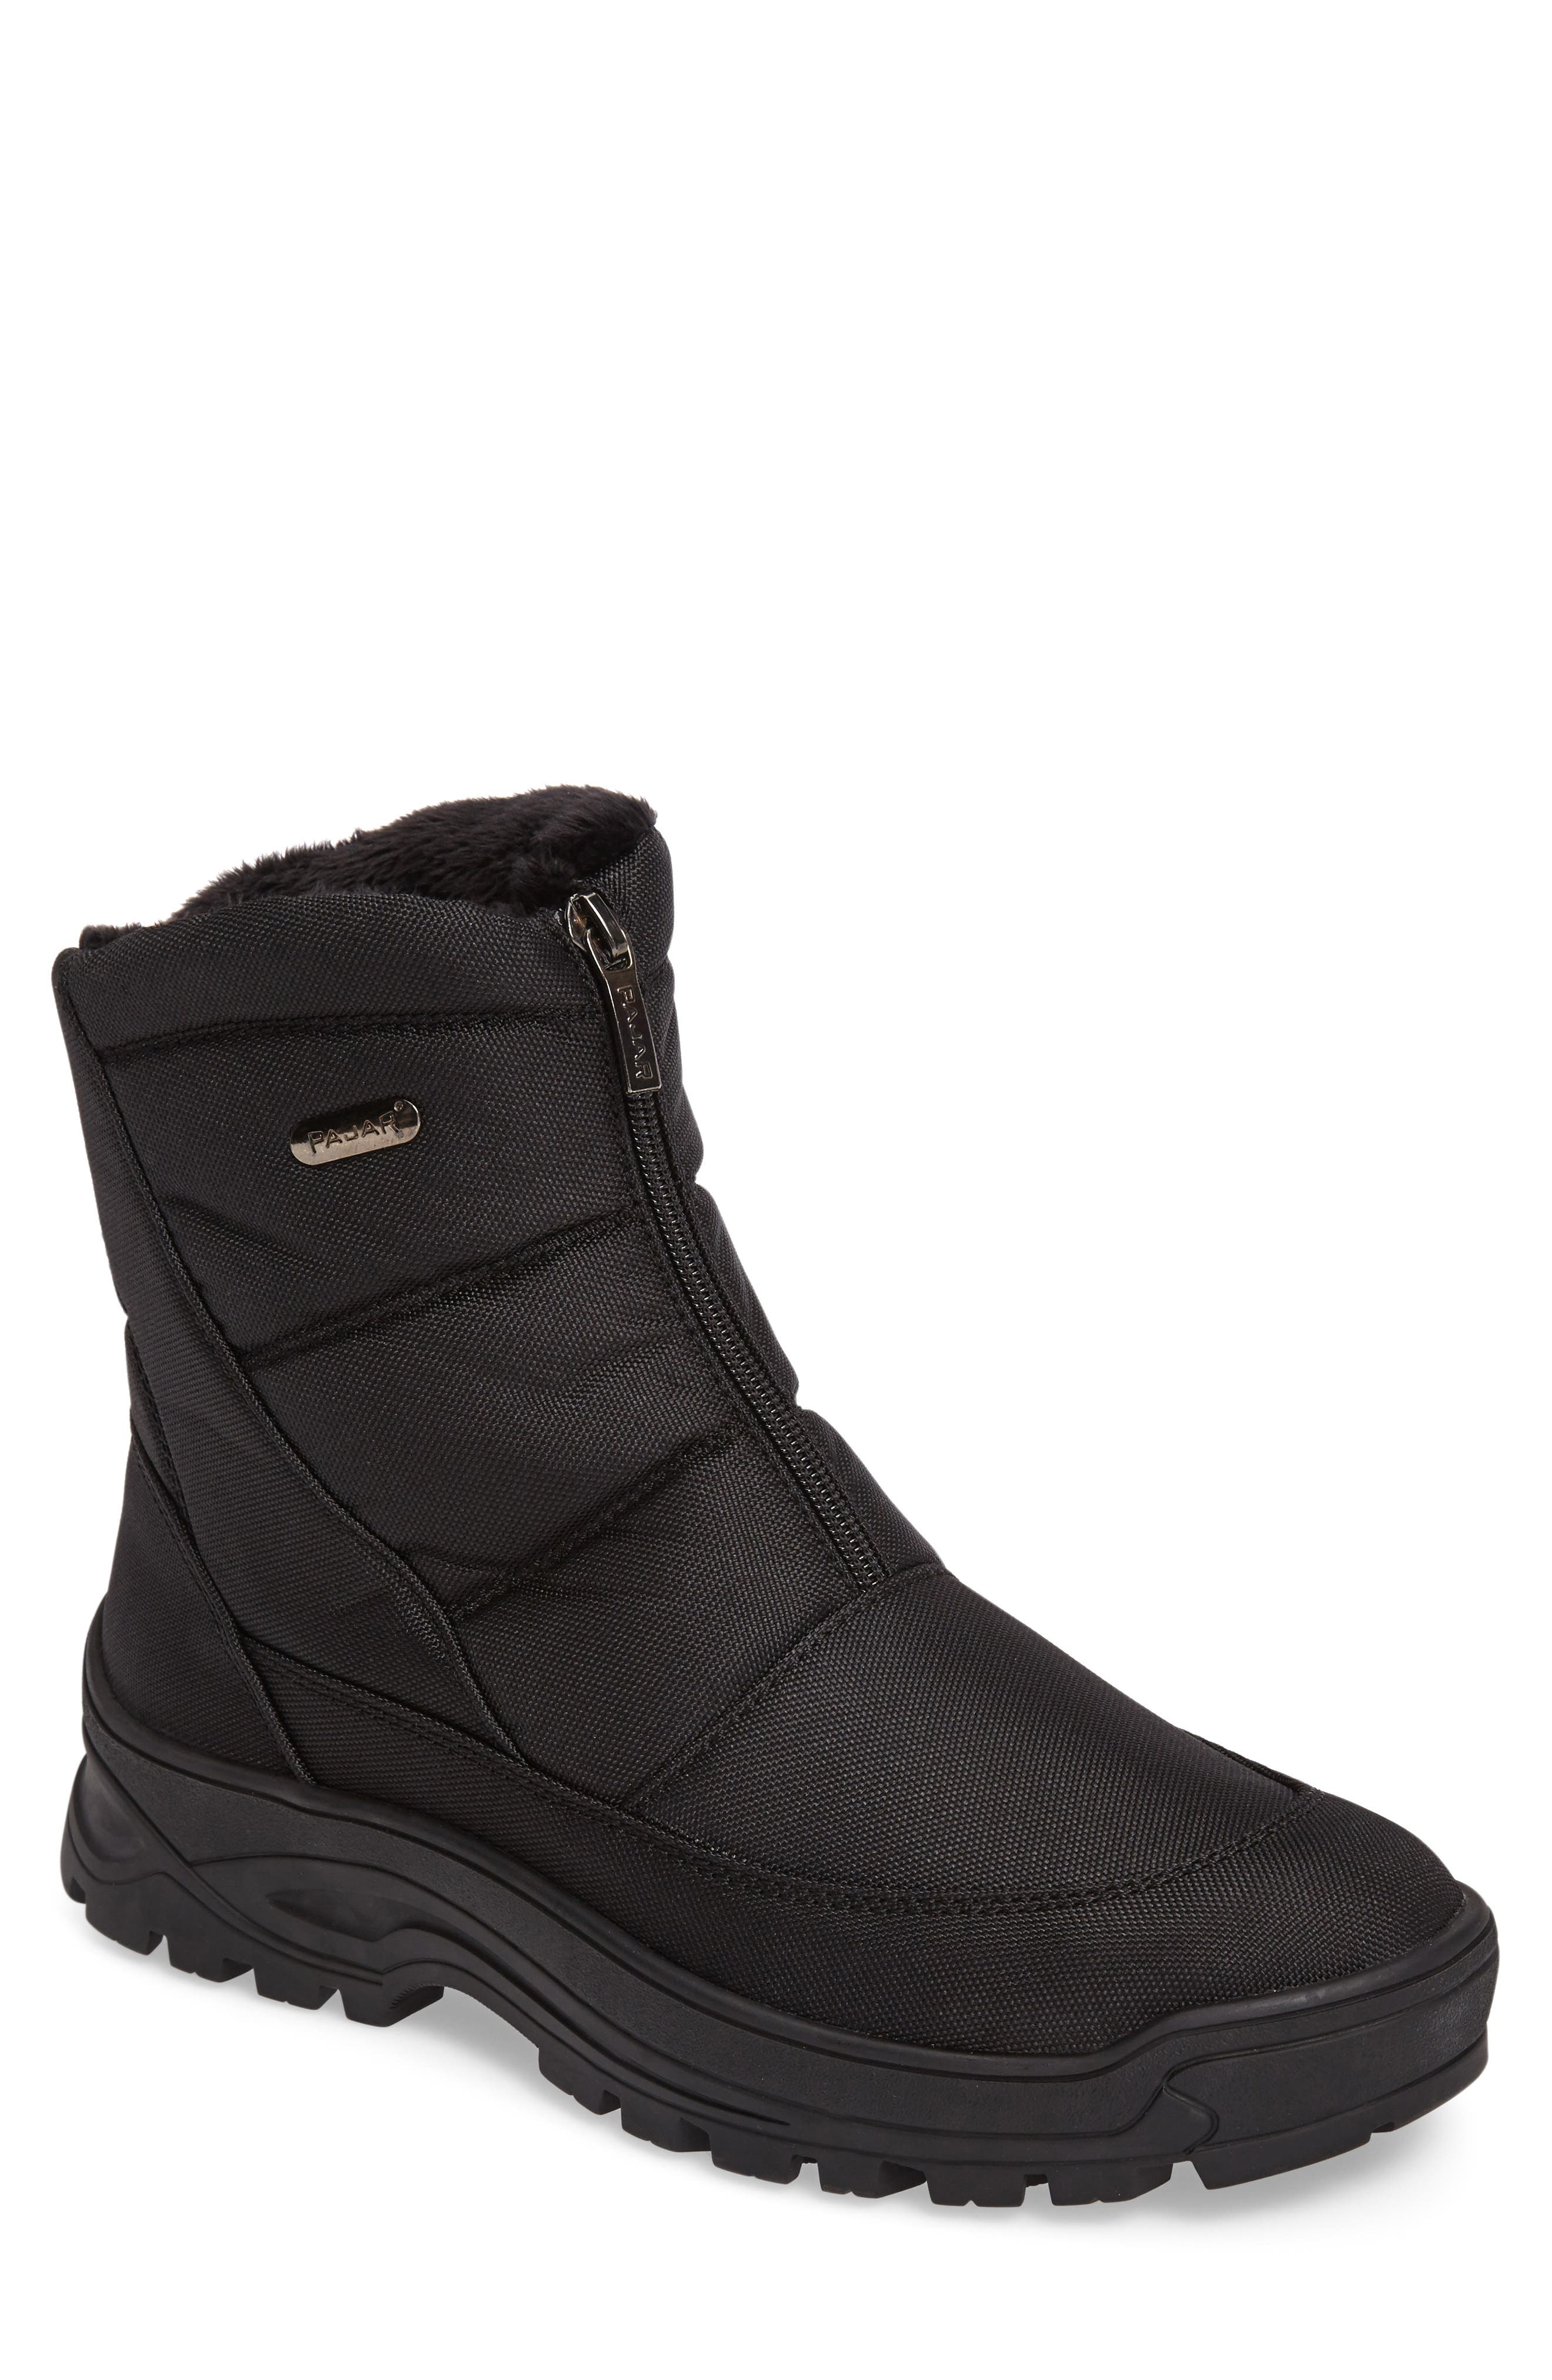 Icepack Boot with Faux Fur Lining,                         Main,                         color, Black